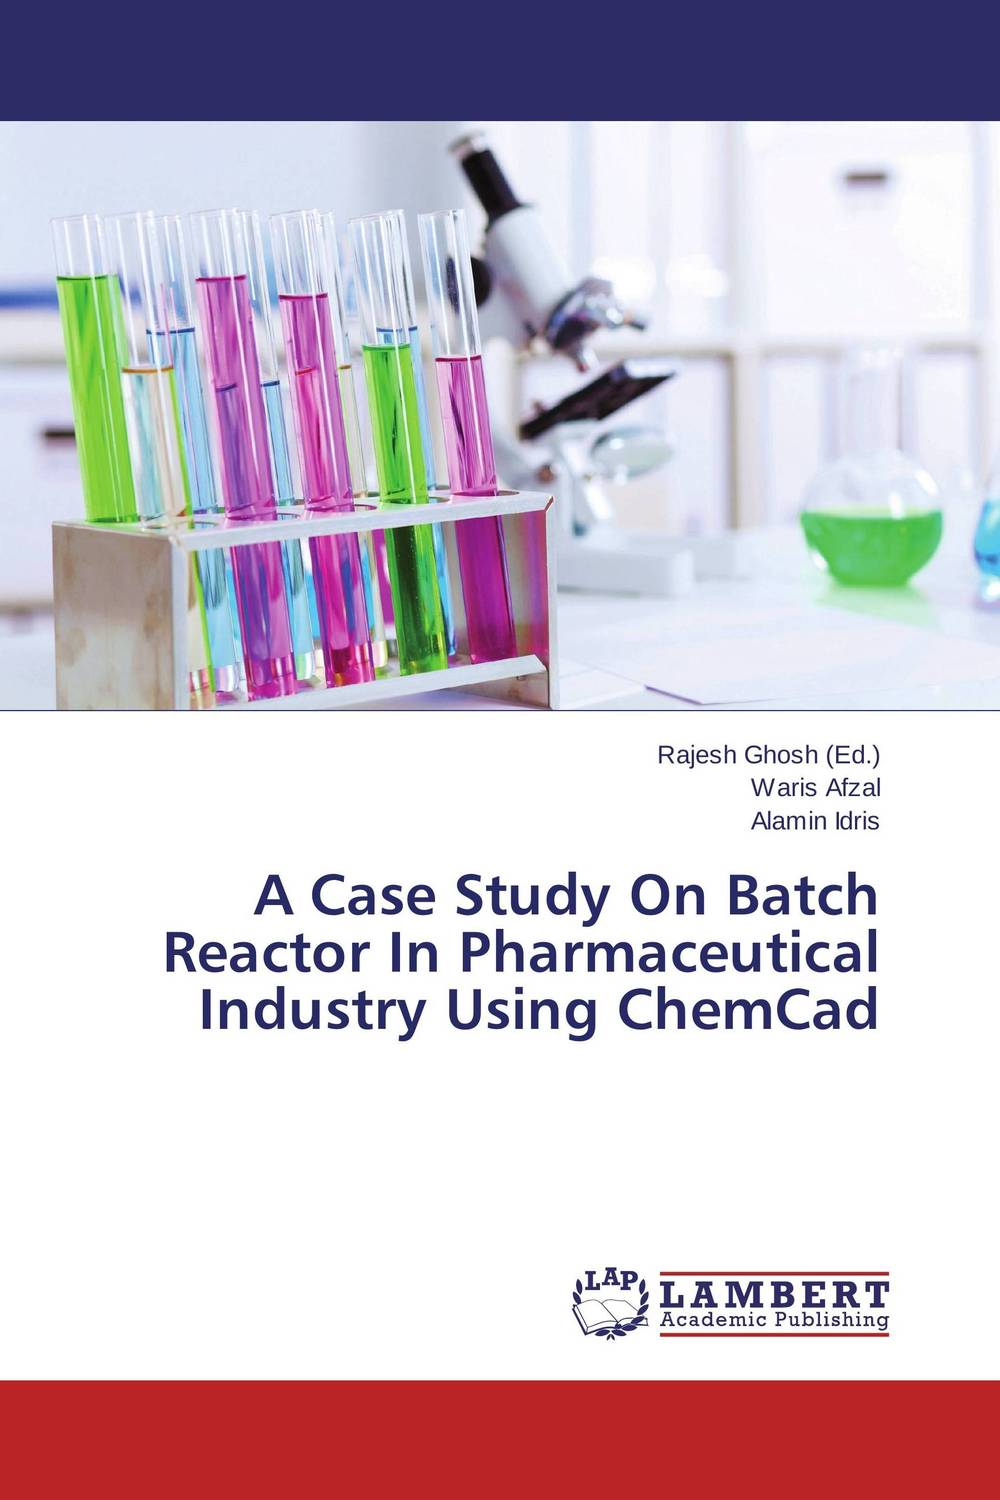 A Case Study On Batch Reactor In Pharmaceutical Industry Using ChemCad dilip kumar dam break analysis using hec ras a case study